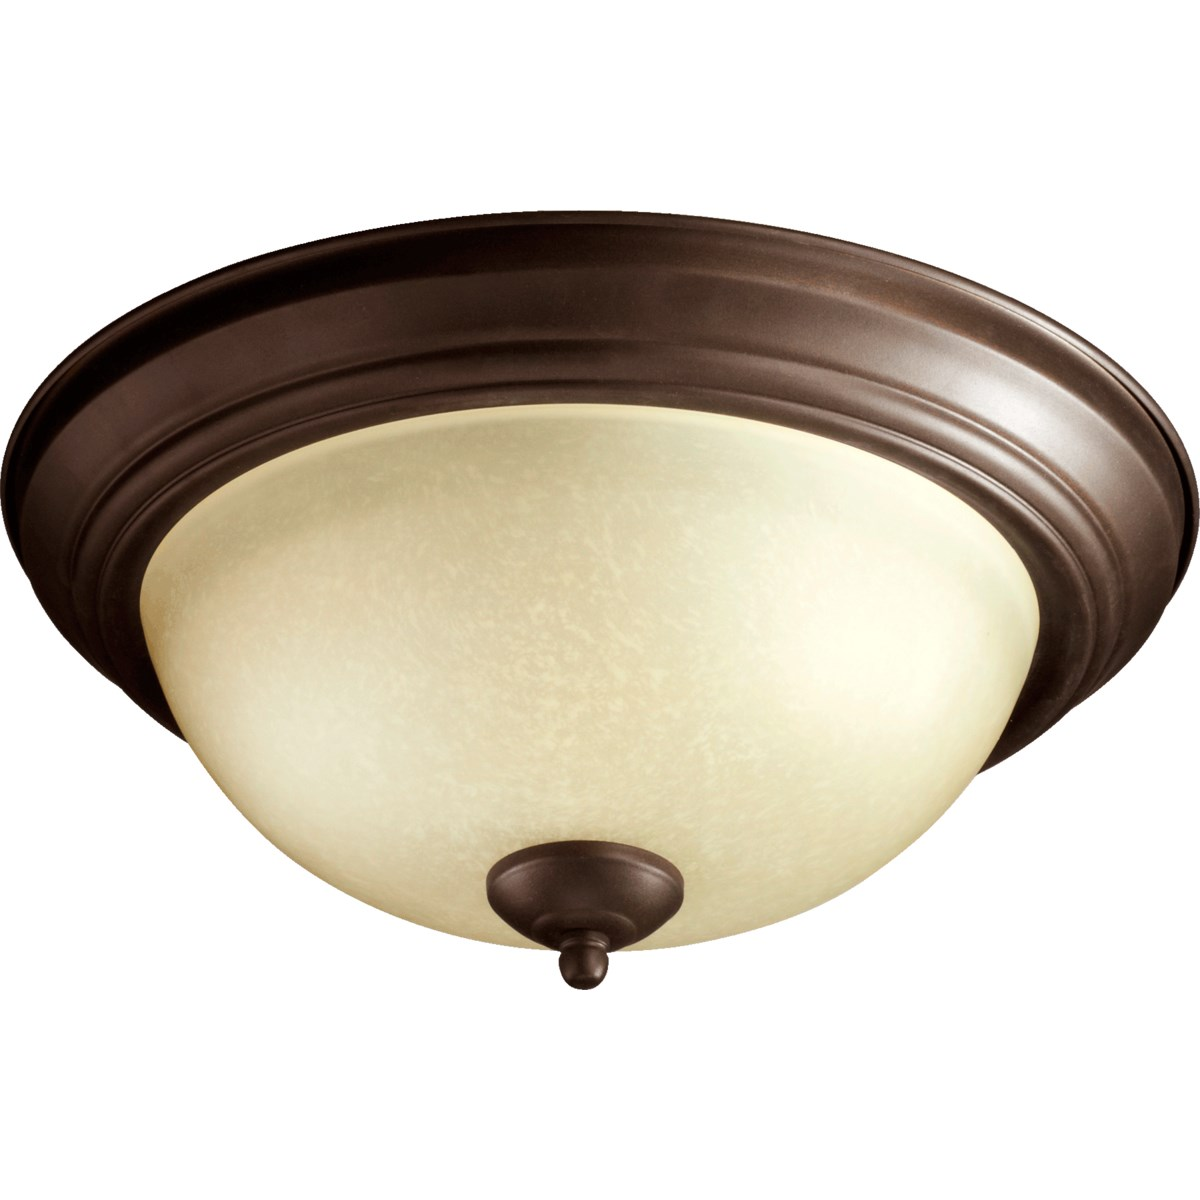 13 Inch Ceiling Mount Oiled Bronze